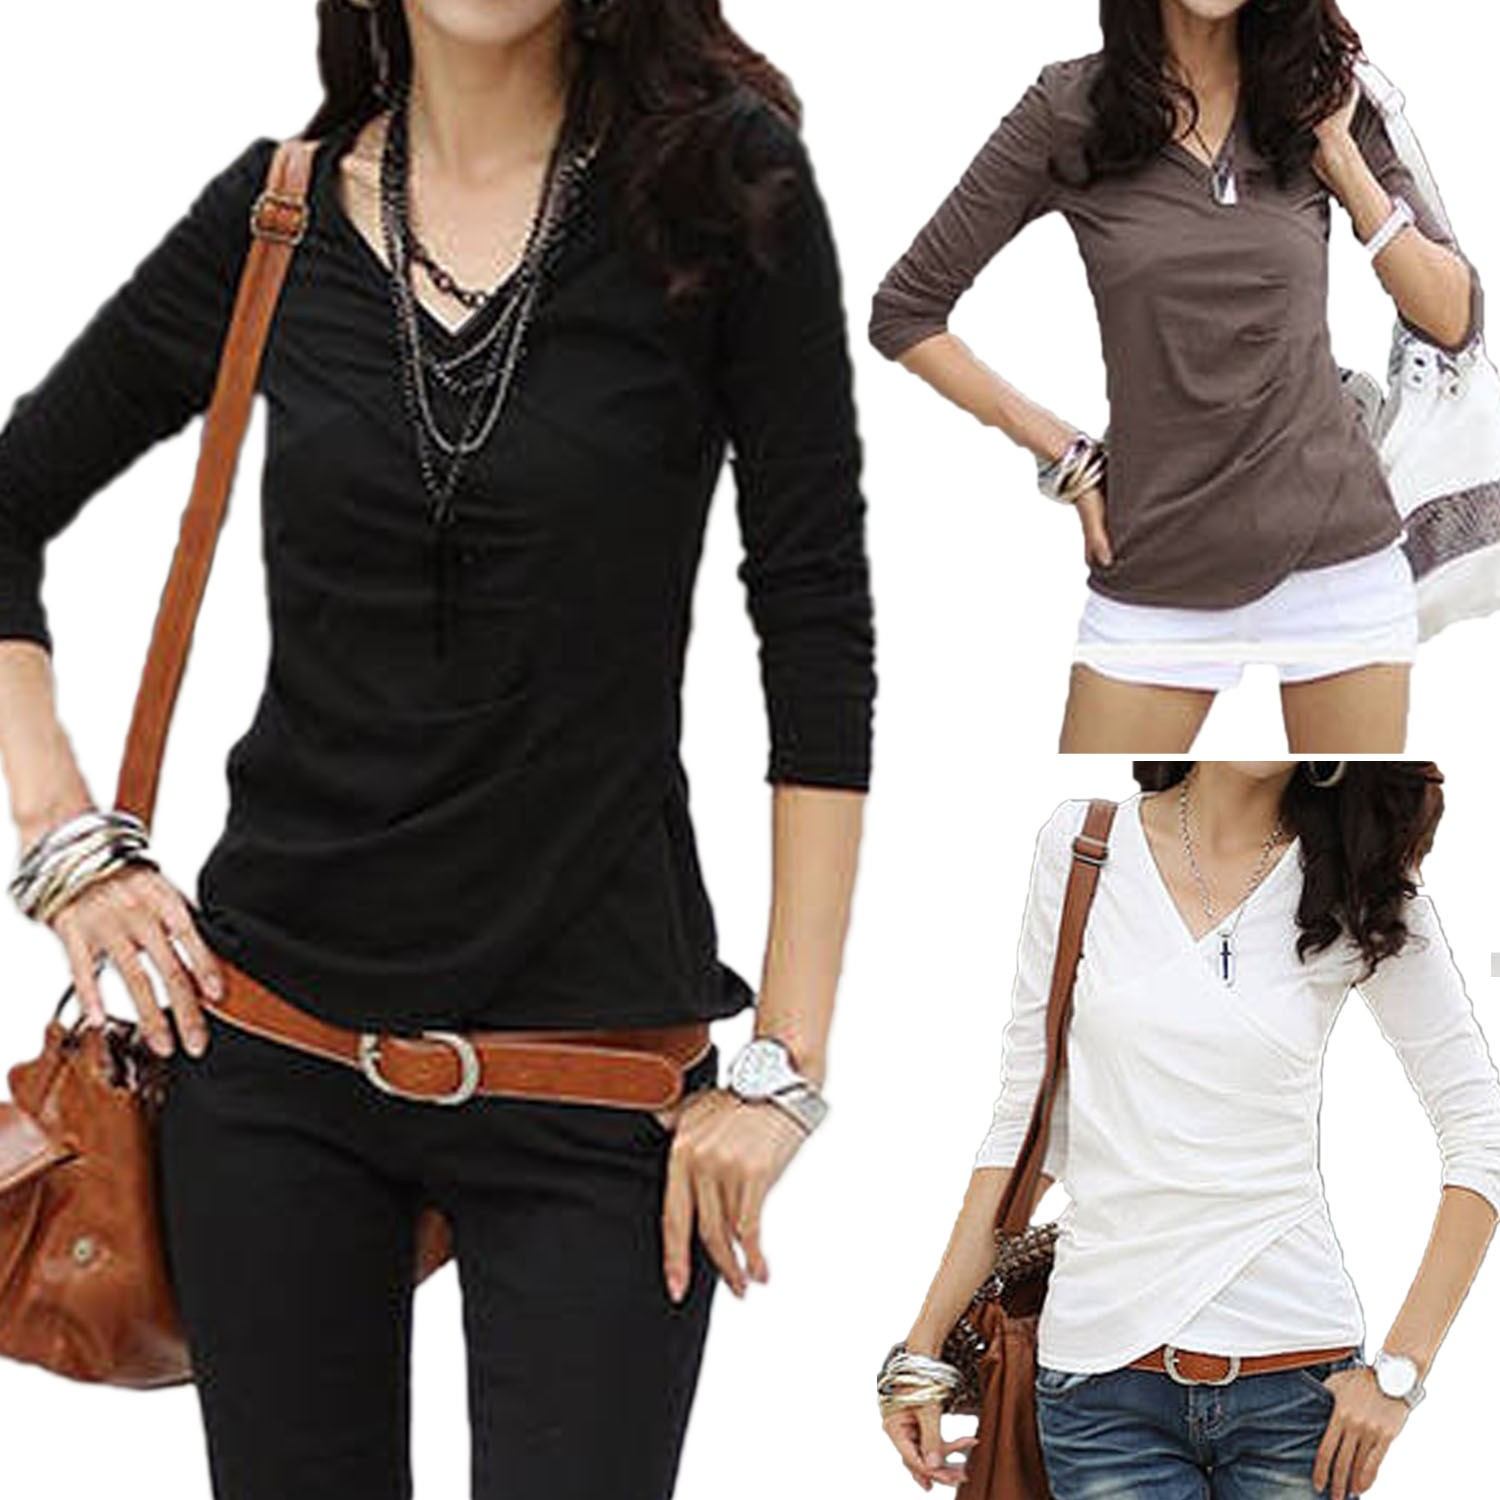 Black/Brown/White Vintage 3/4 Sleeve Boho Casual Cotton V Neck Top Blouse